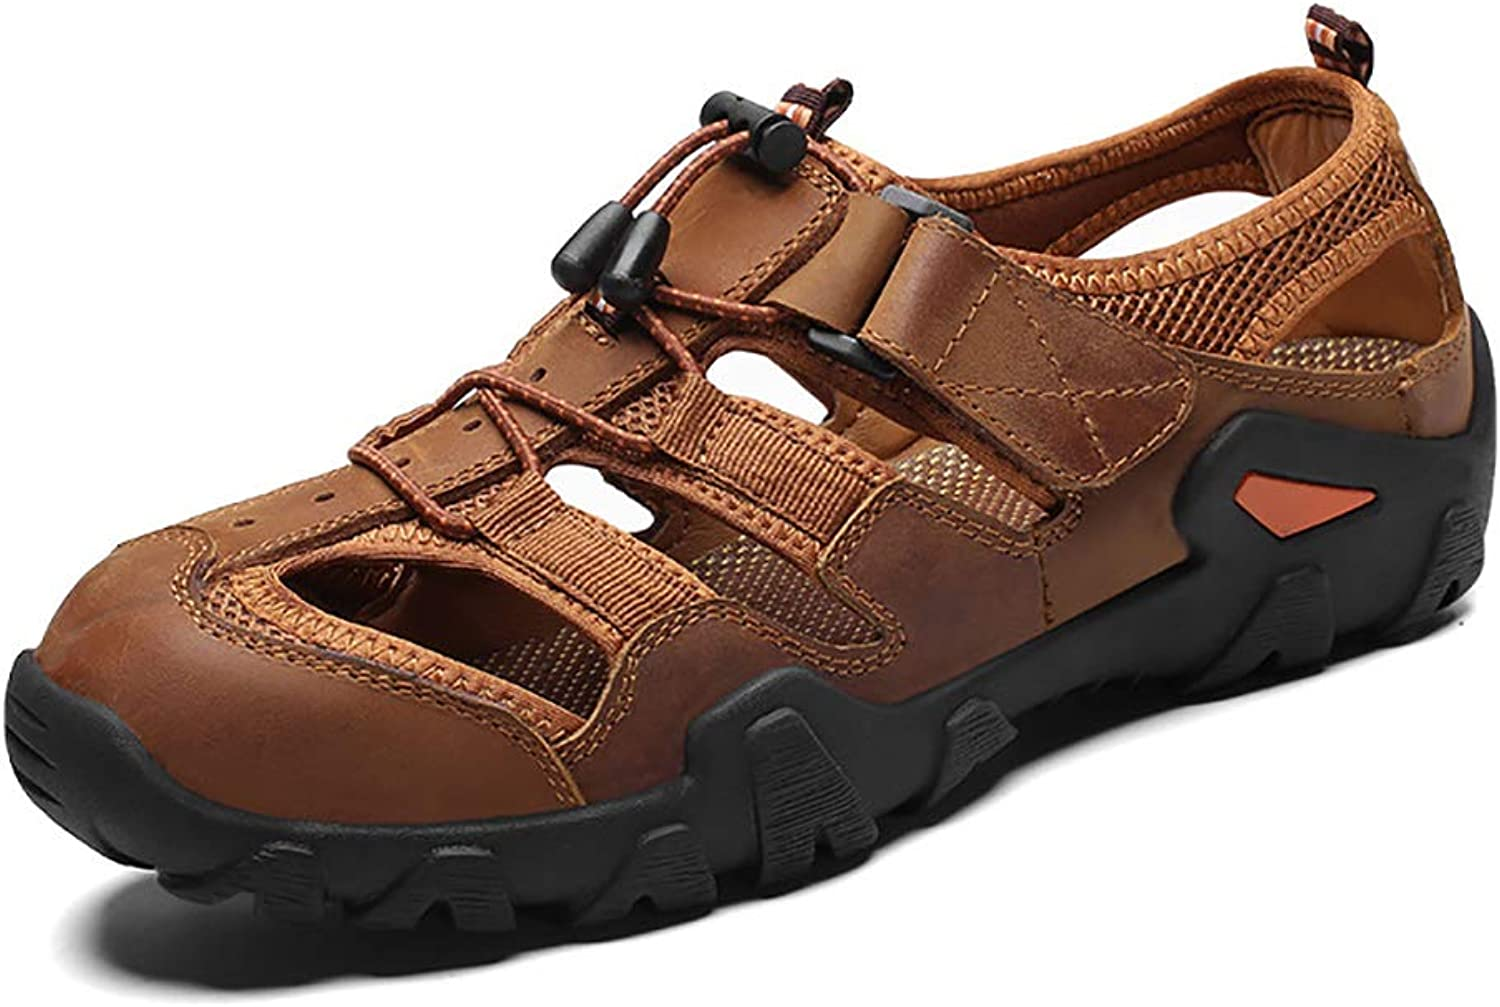 FHTDN Sports Athletic Sandals Men Closed Toe Summer Sports Casual Fisherman Leather Beach shoes Hiking Outdoor Anti Collision